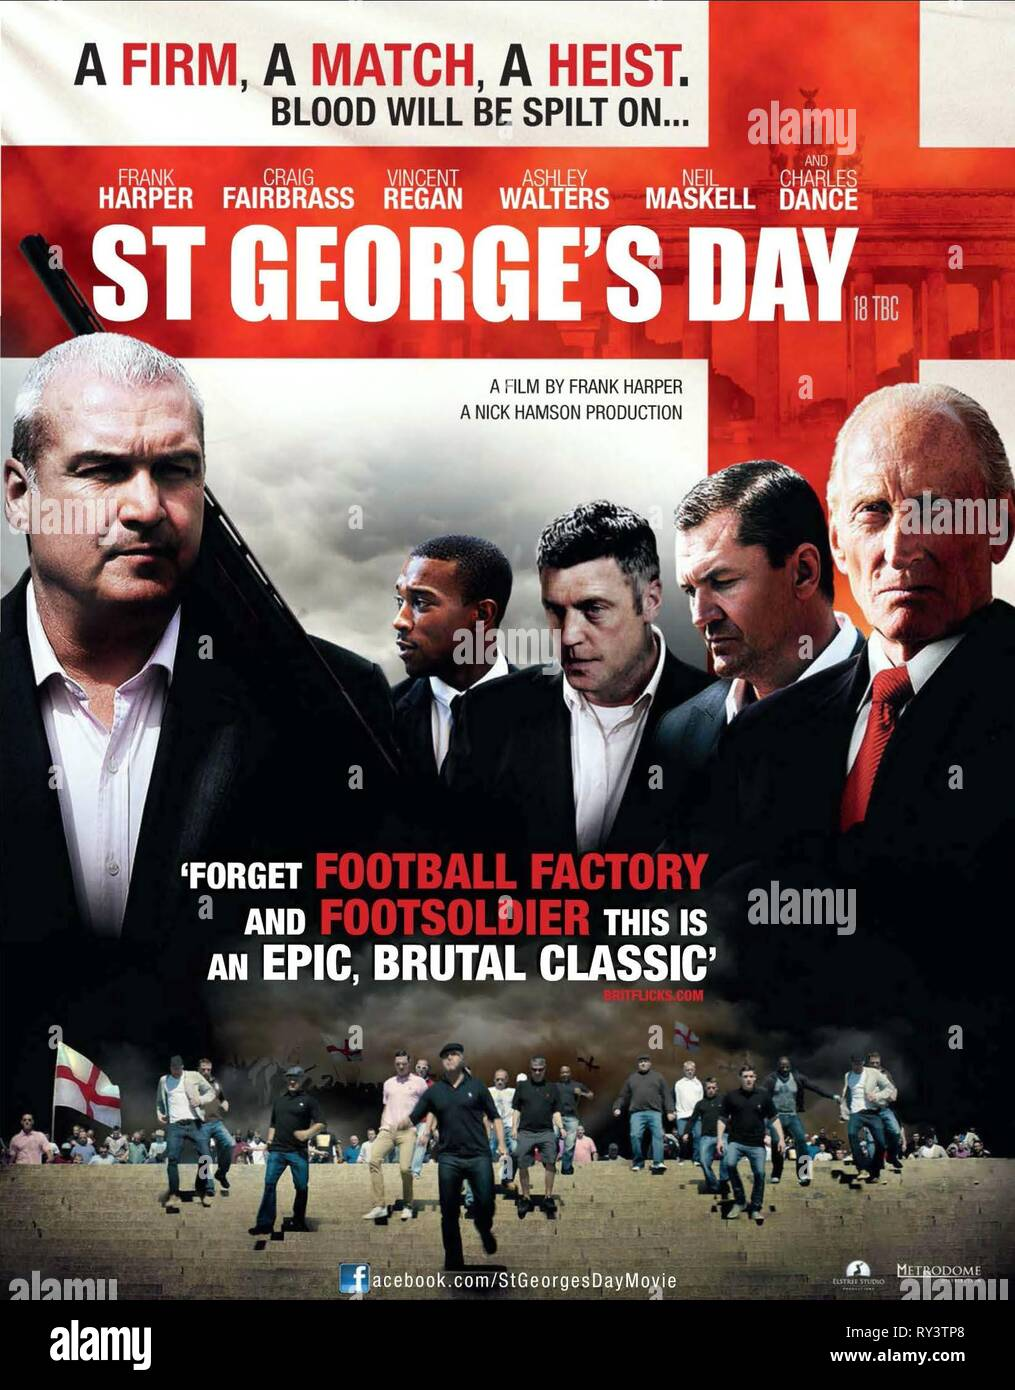 FRANK HARPER, ASHLEY WALTERS, VINCENT REGAN, CRAIG FAIRBRASS,CHARLES DANCE POSTER, ST GEORGE'S DAY, 2012 - Stock Image